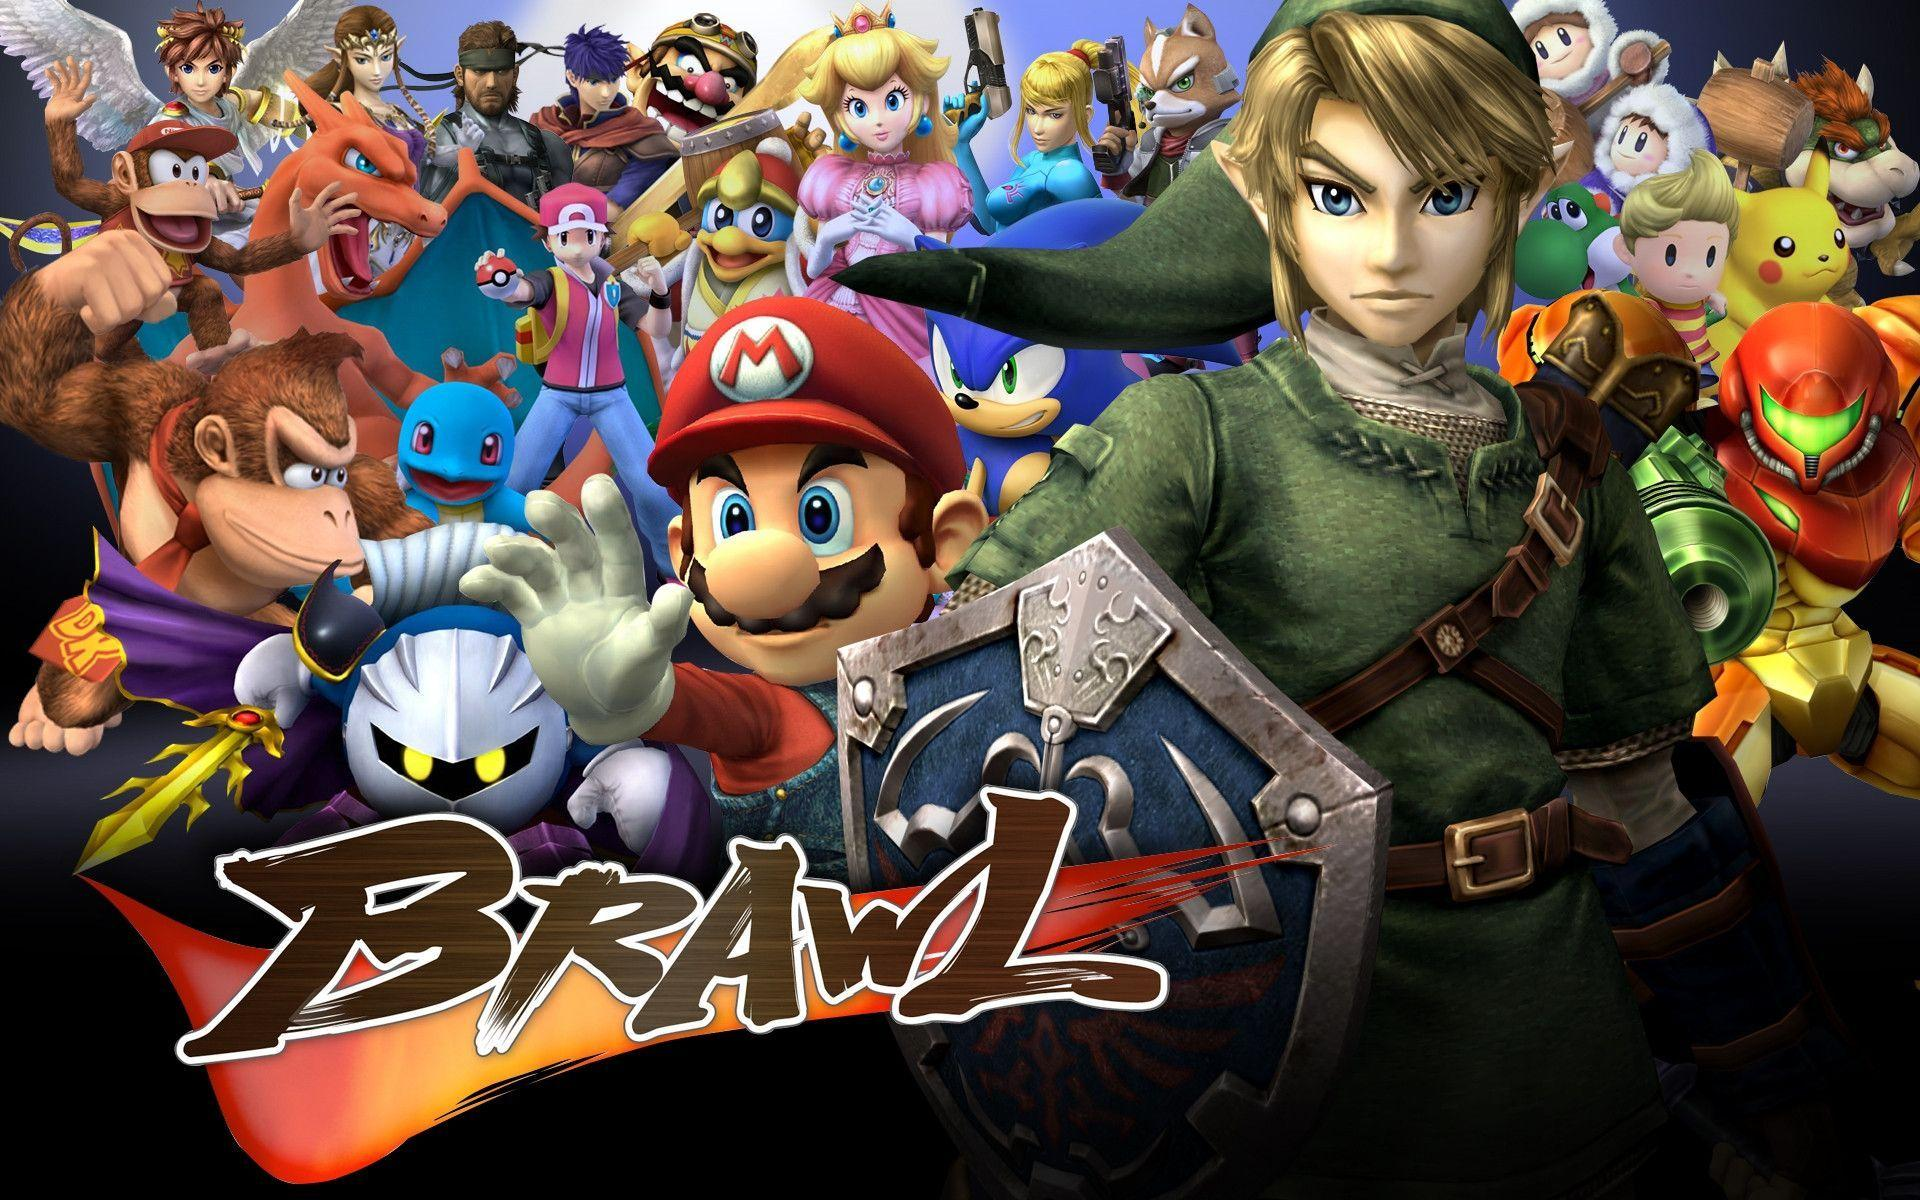 Super Smash Bros. Brawl Wallpapers